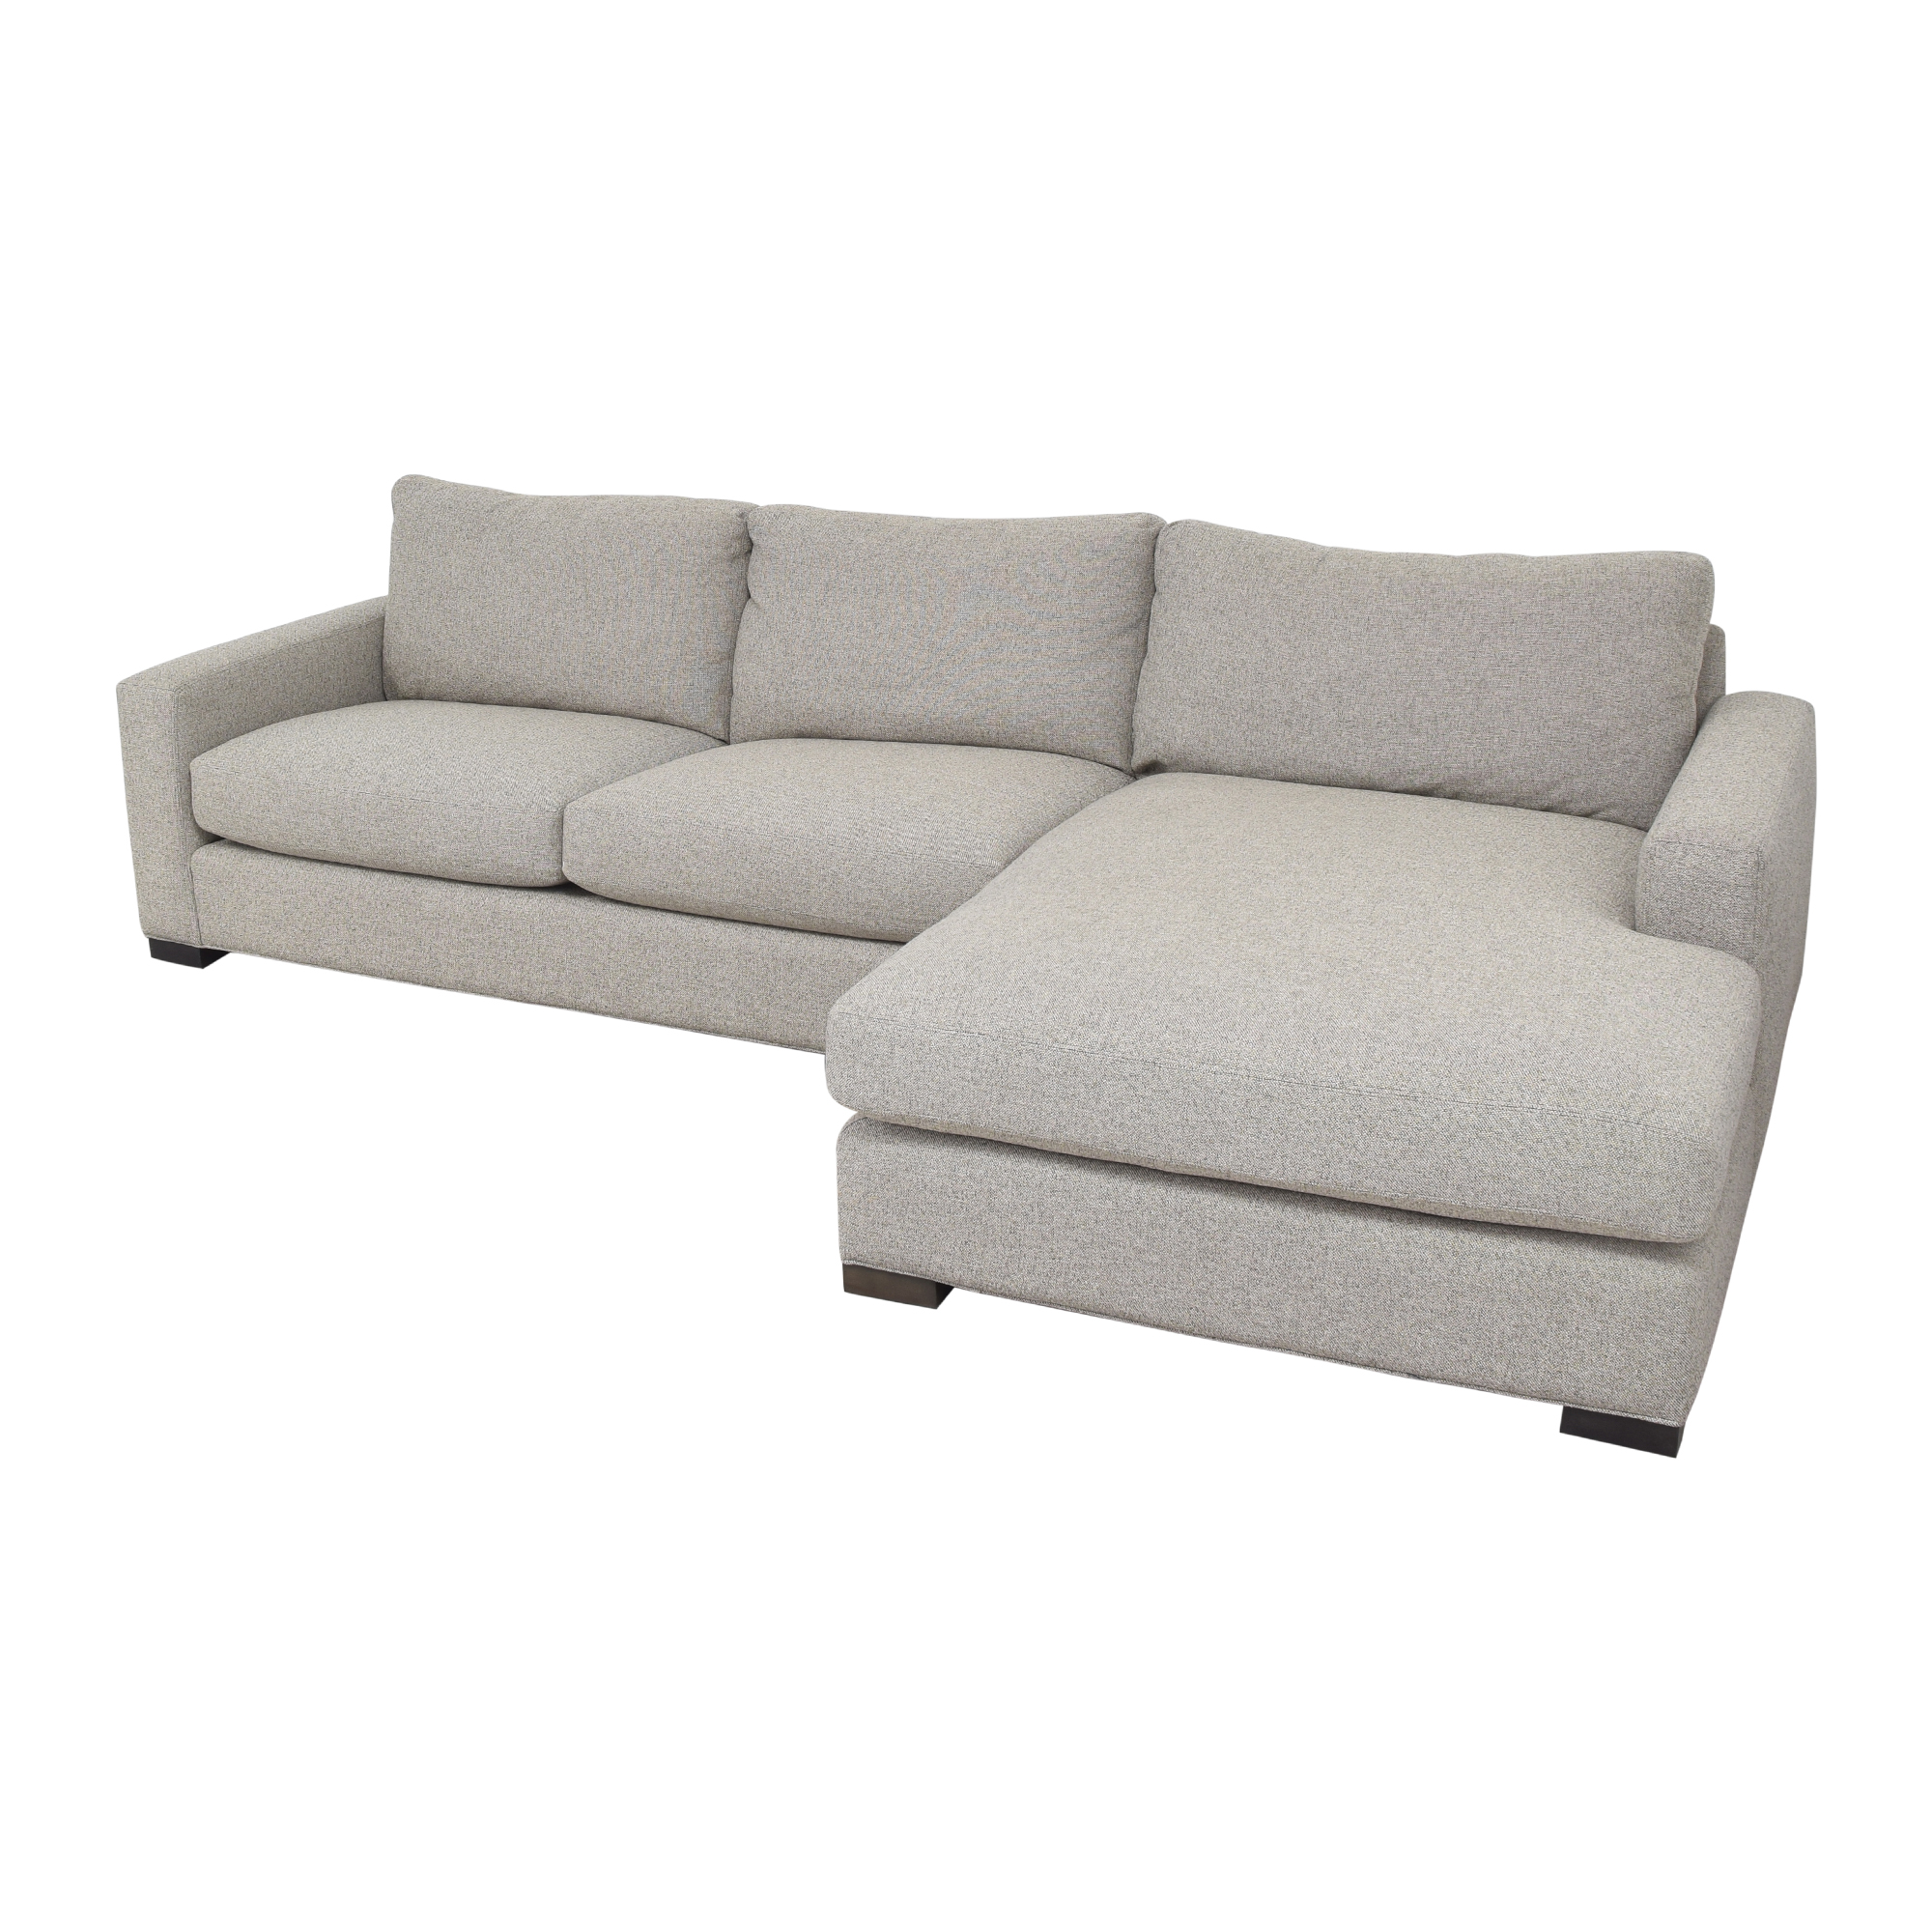 shop Room & Board Metro Chaise Sectional Sofa and Ottoman Room & Board Sectionals